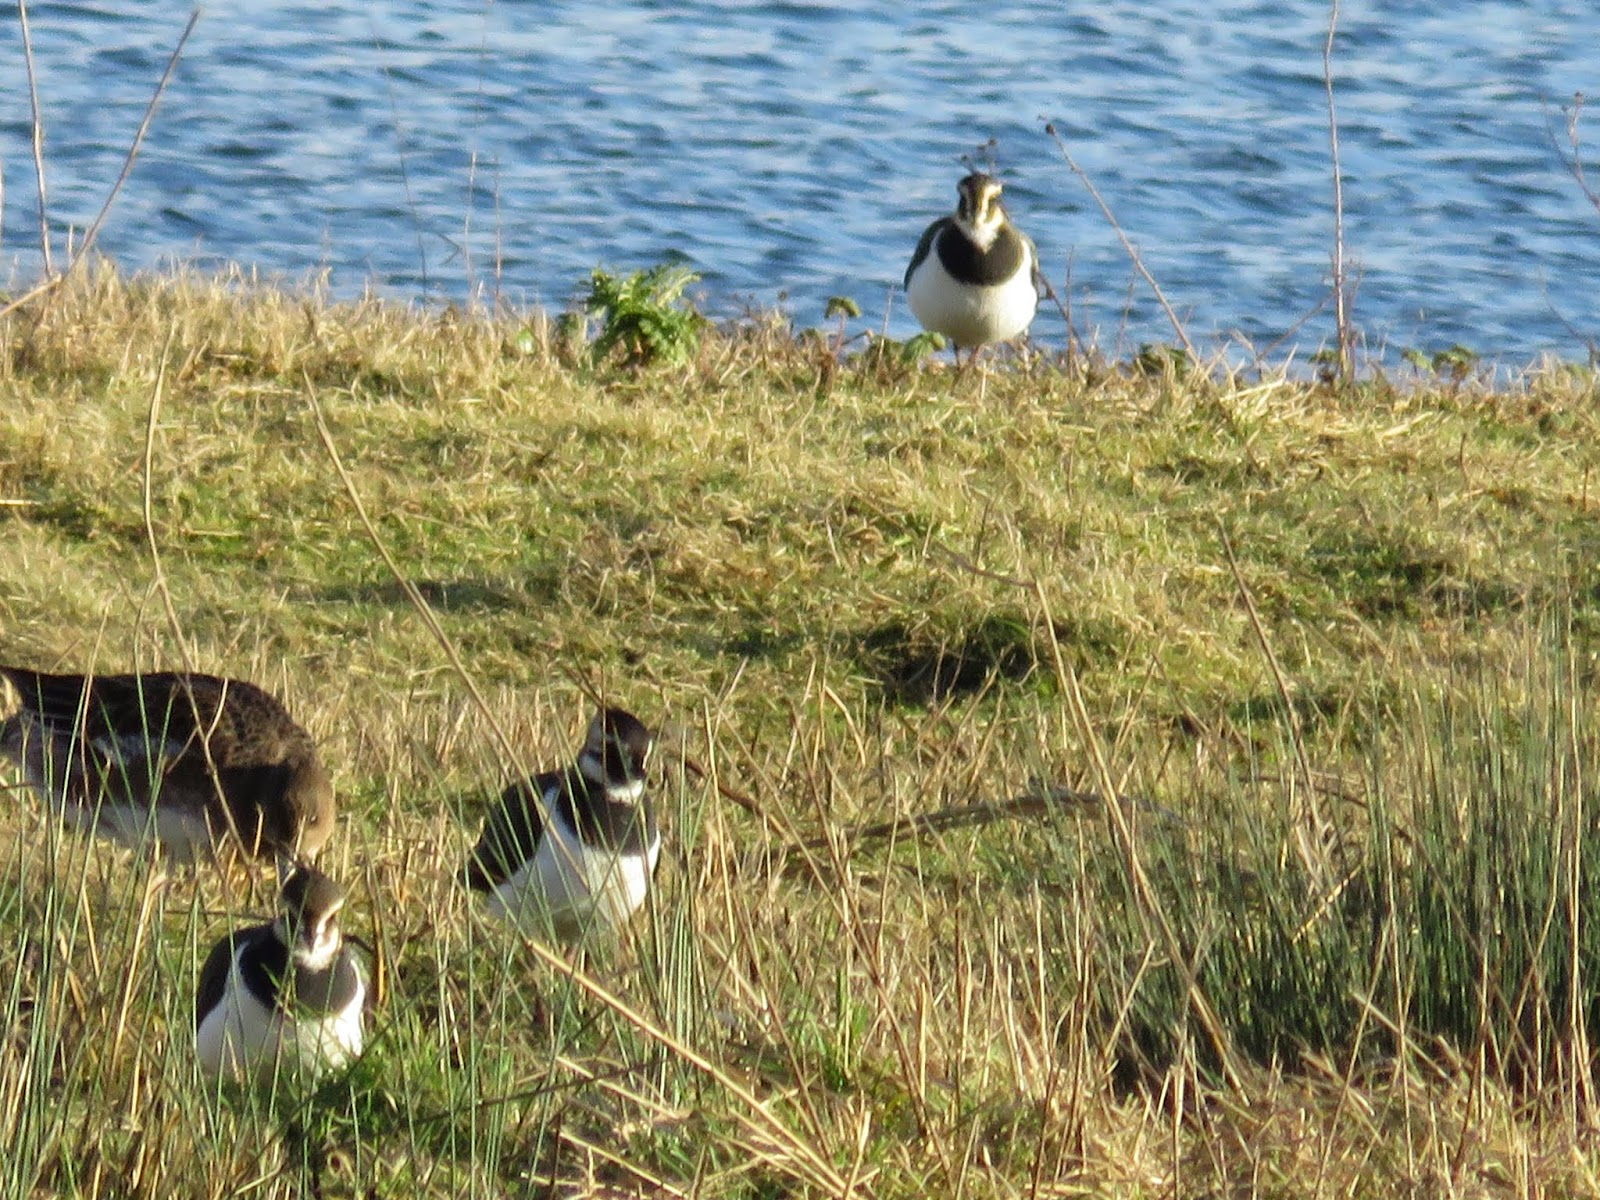 WWT London Wetland Centre: Lapwings